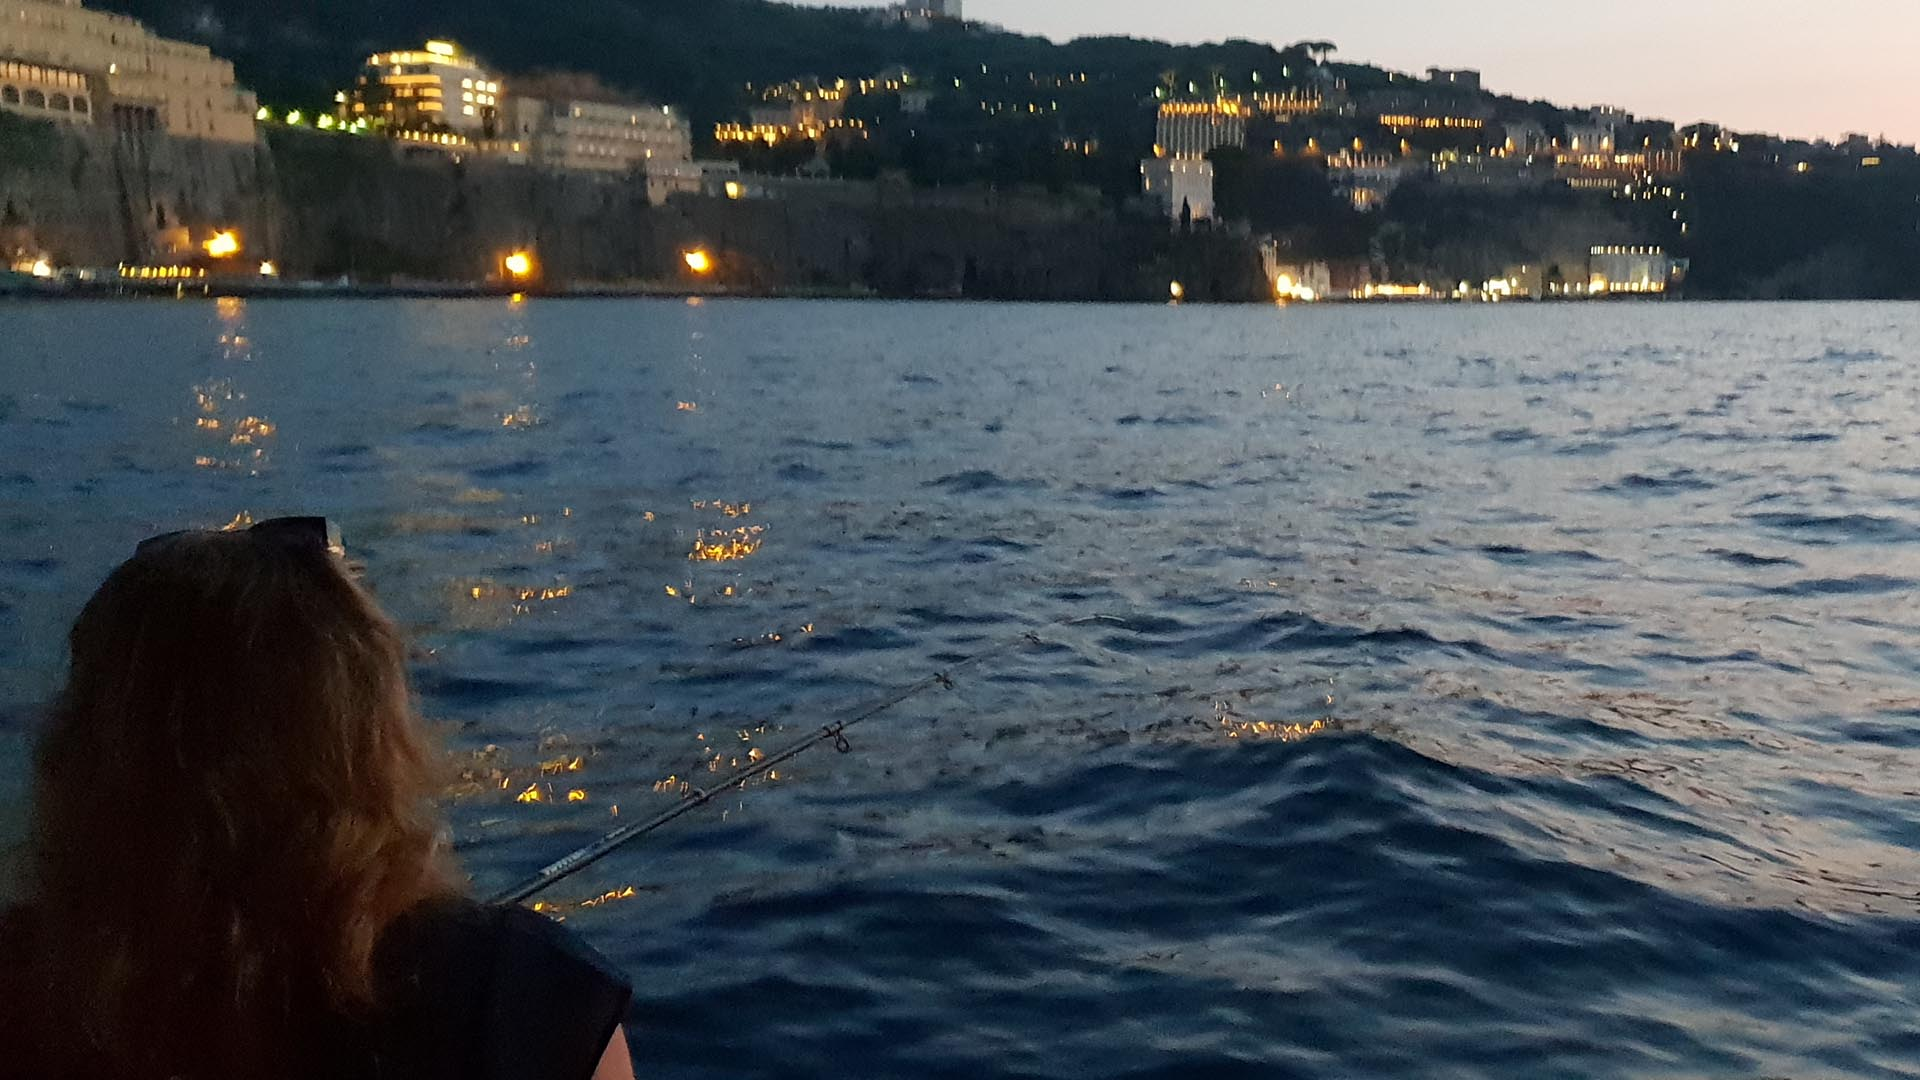 Fishing at night from the boat in front of Sorrento